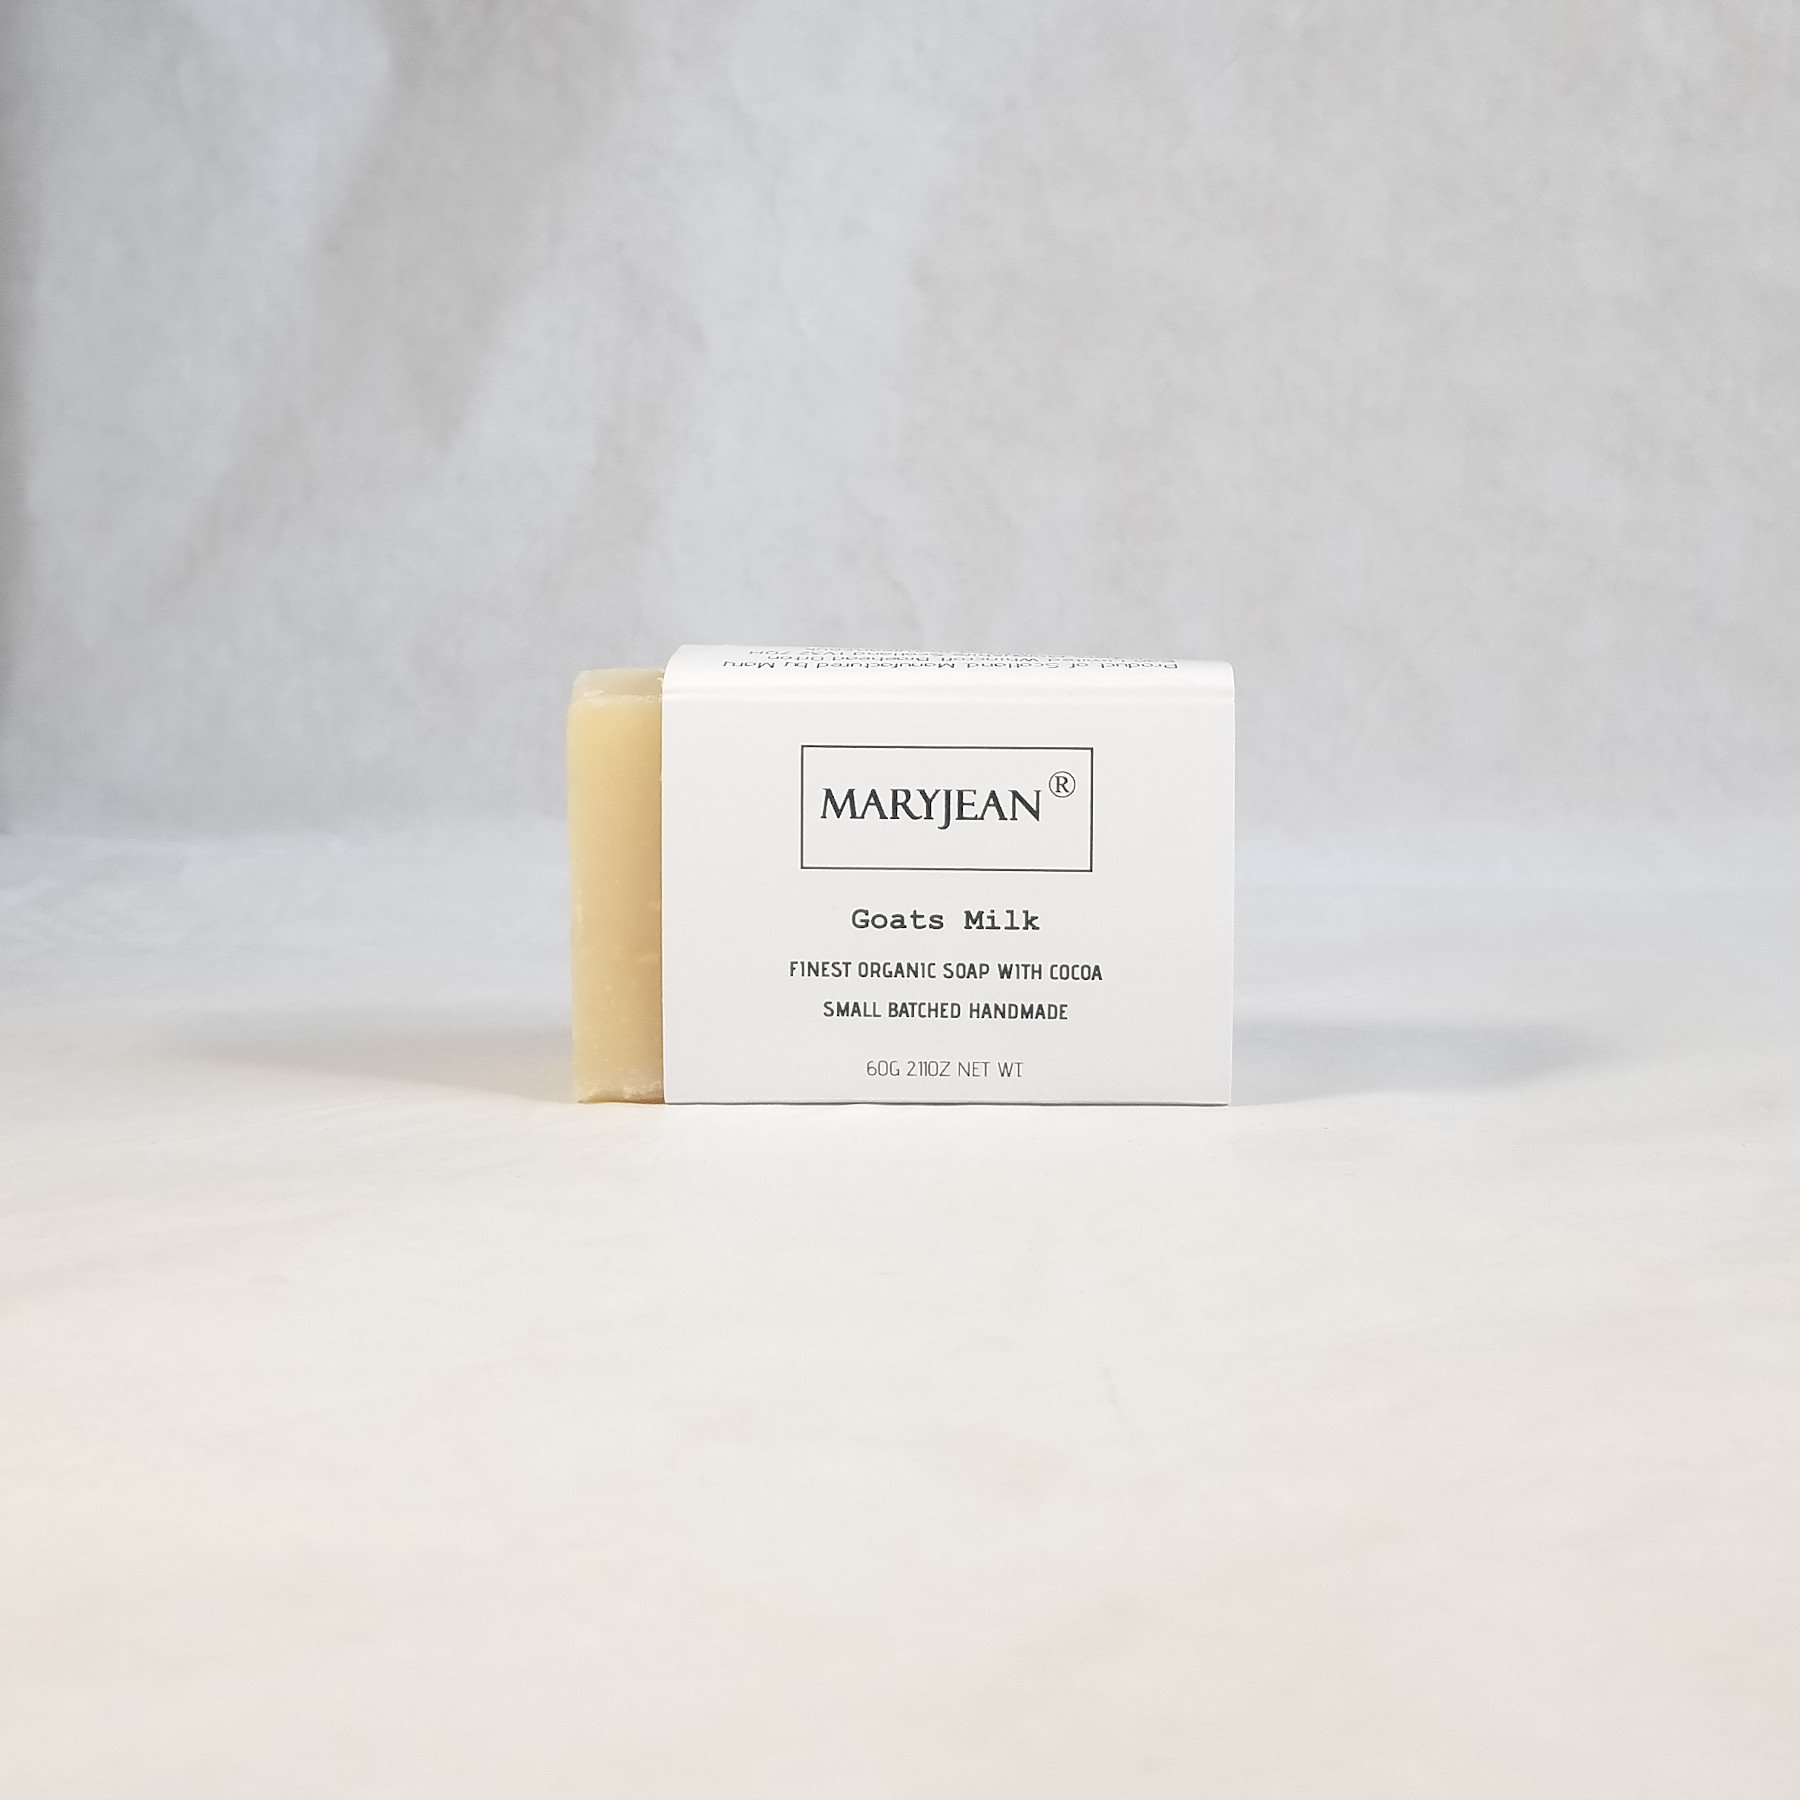 Best solution soap bar for eczema and psoriasis leaving your skin repaired and polished with a glow from goats milk soap Travel Size Organic Scottish Goats Milk Soap Handmade With Cocoa